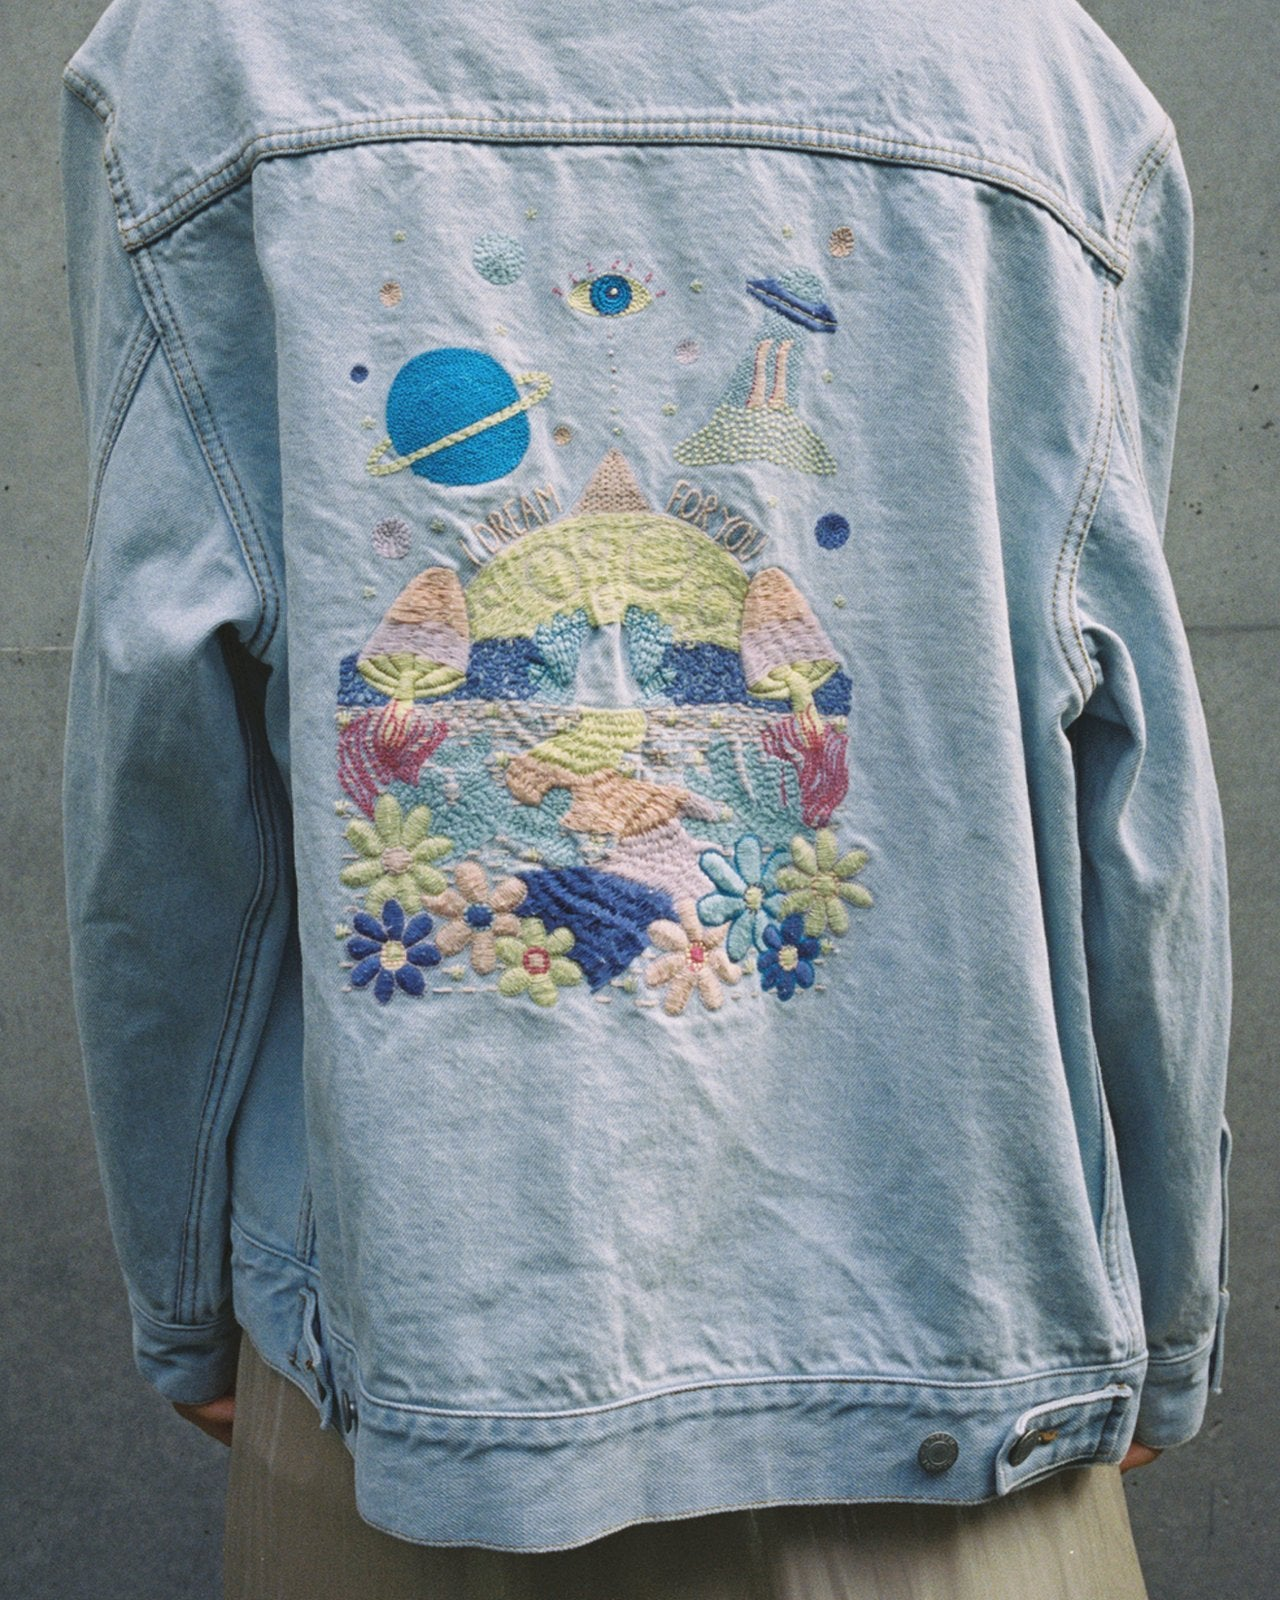 Denim Jacket with Embroidery